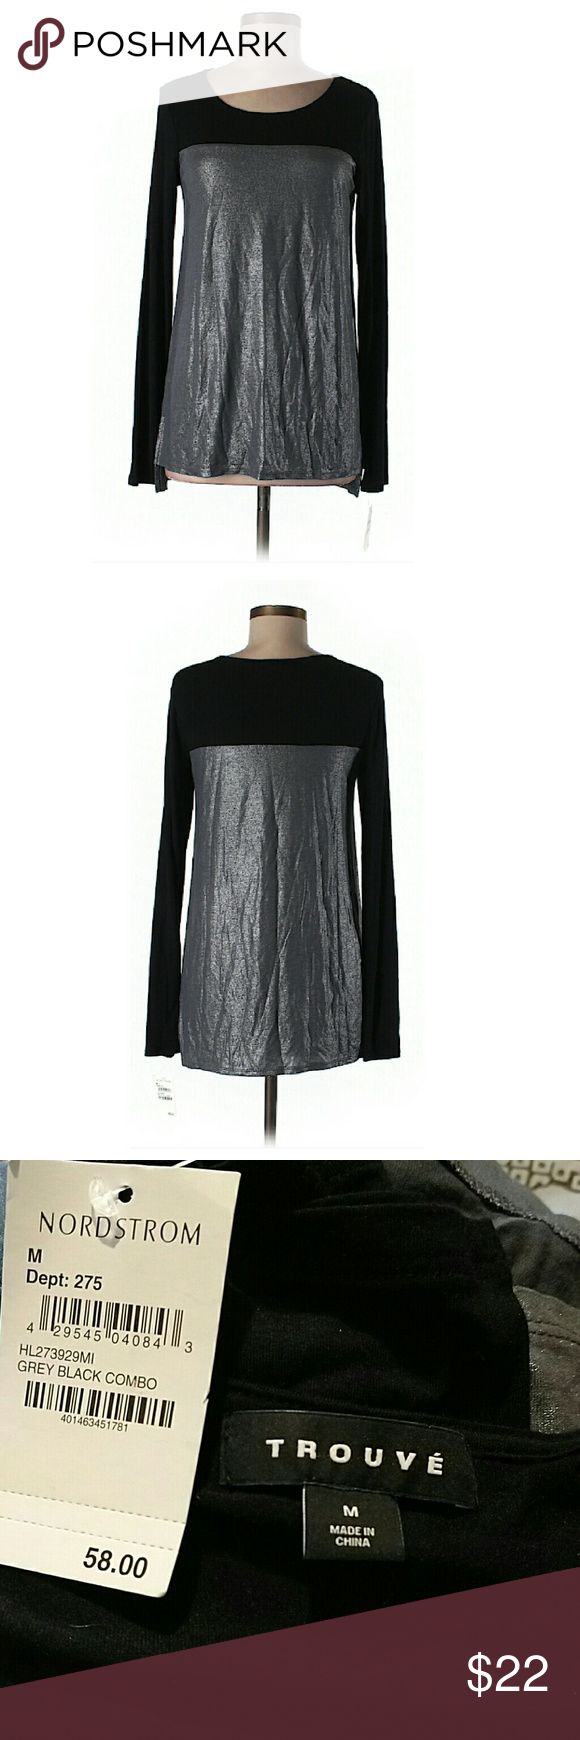 """Nordstrom Black & Gray Metallic Long Sleeve Top NWT. 34"""" chest, 27"""" long. All pictures are of the actual item that you will receive. Smoke-free home. Trouve Tops Blouses"""